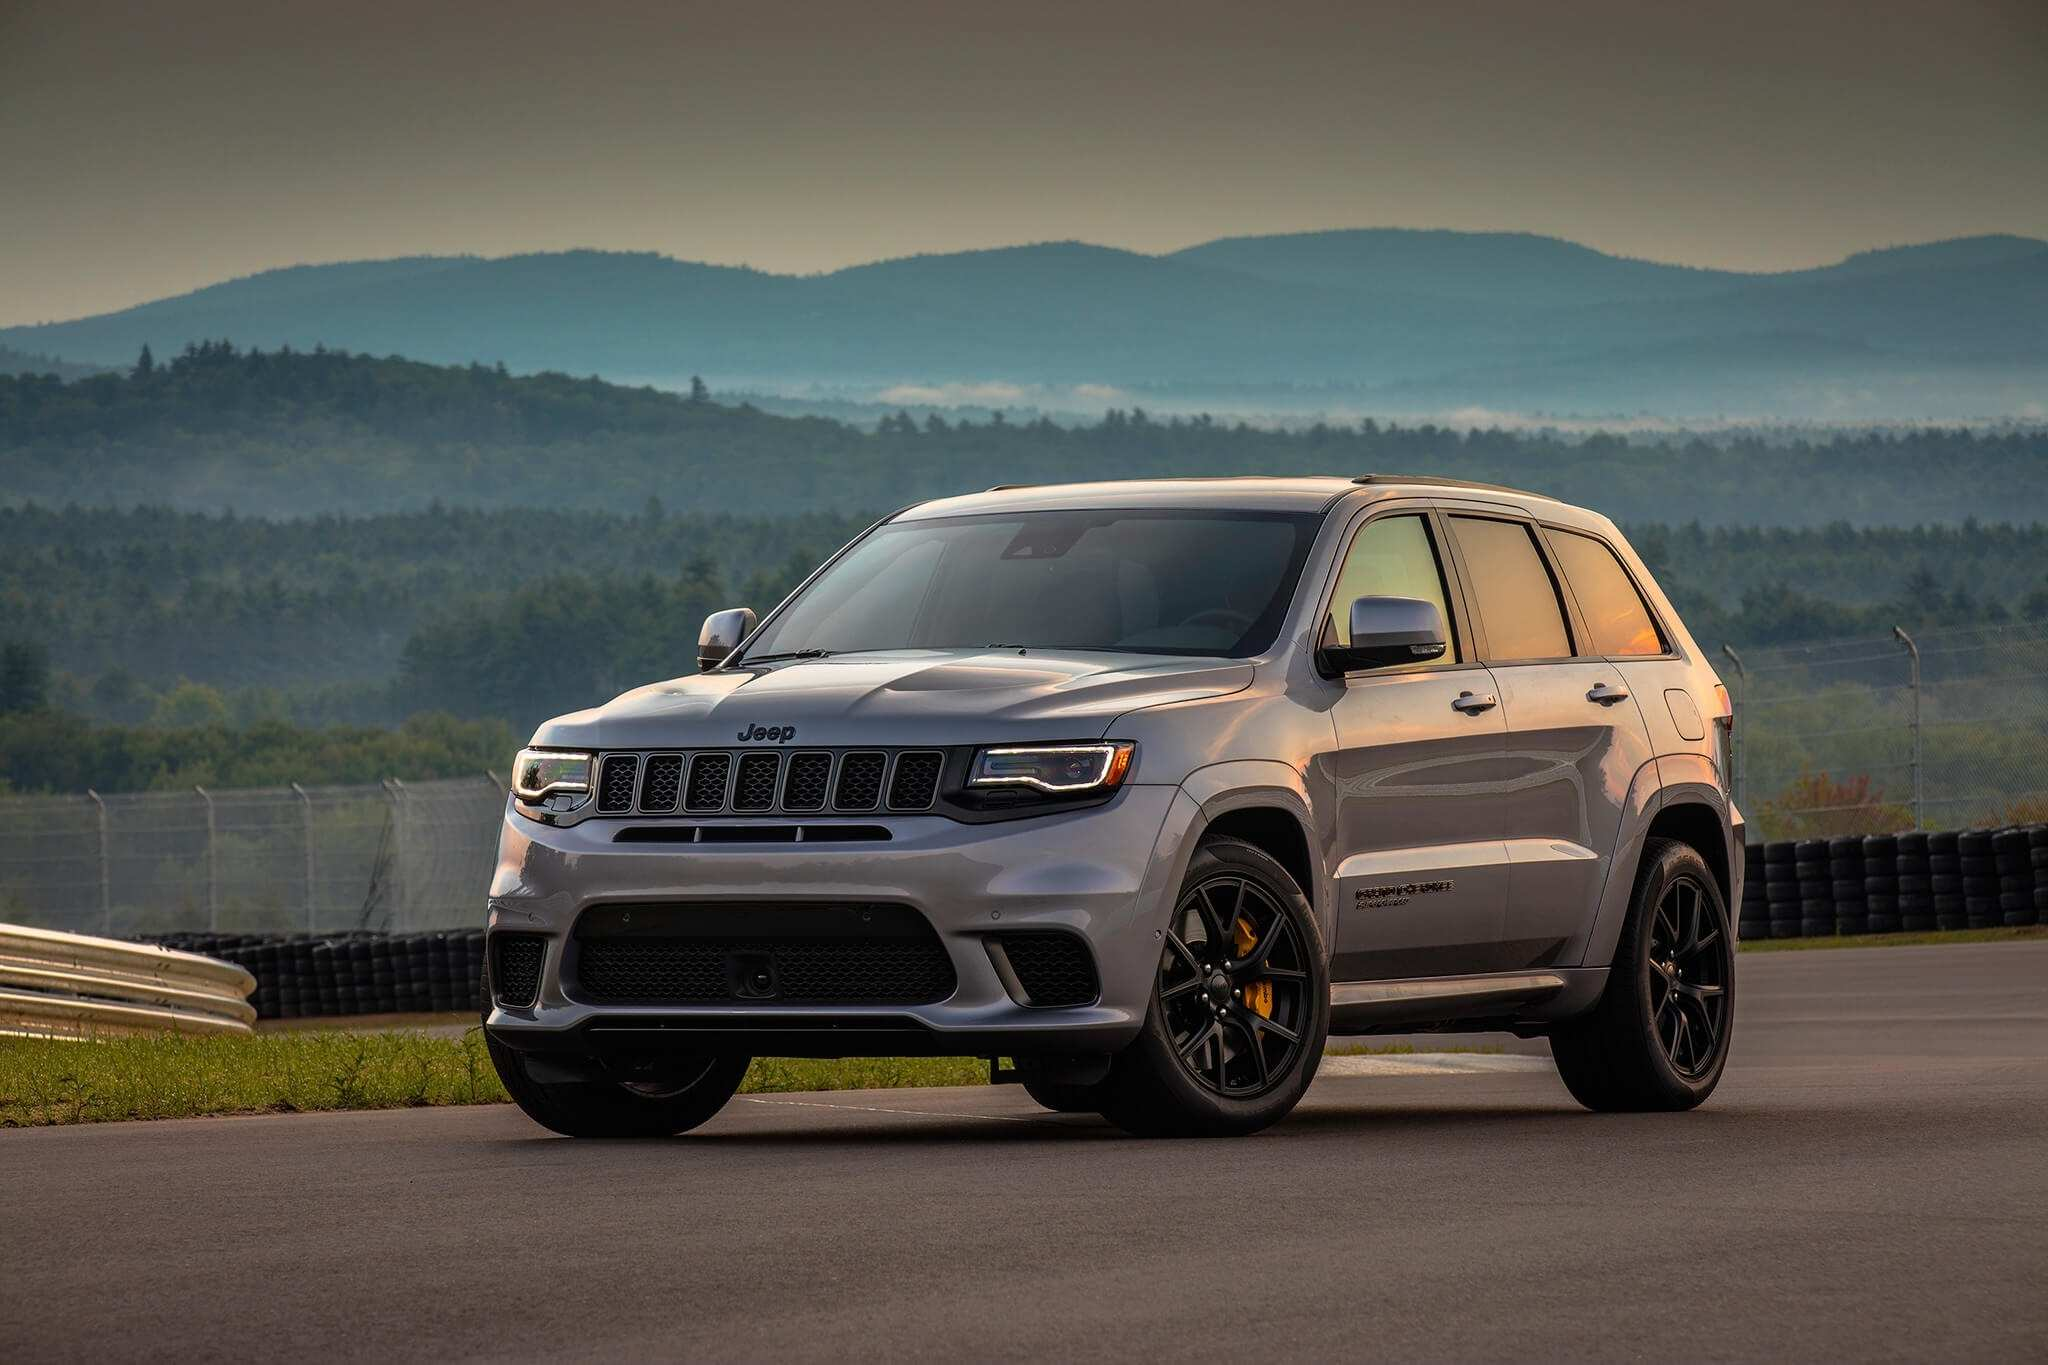 44 New 2020 Jeep Grand Cherokee Diesel Price And Review